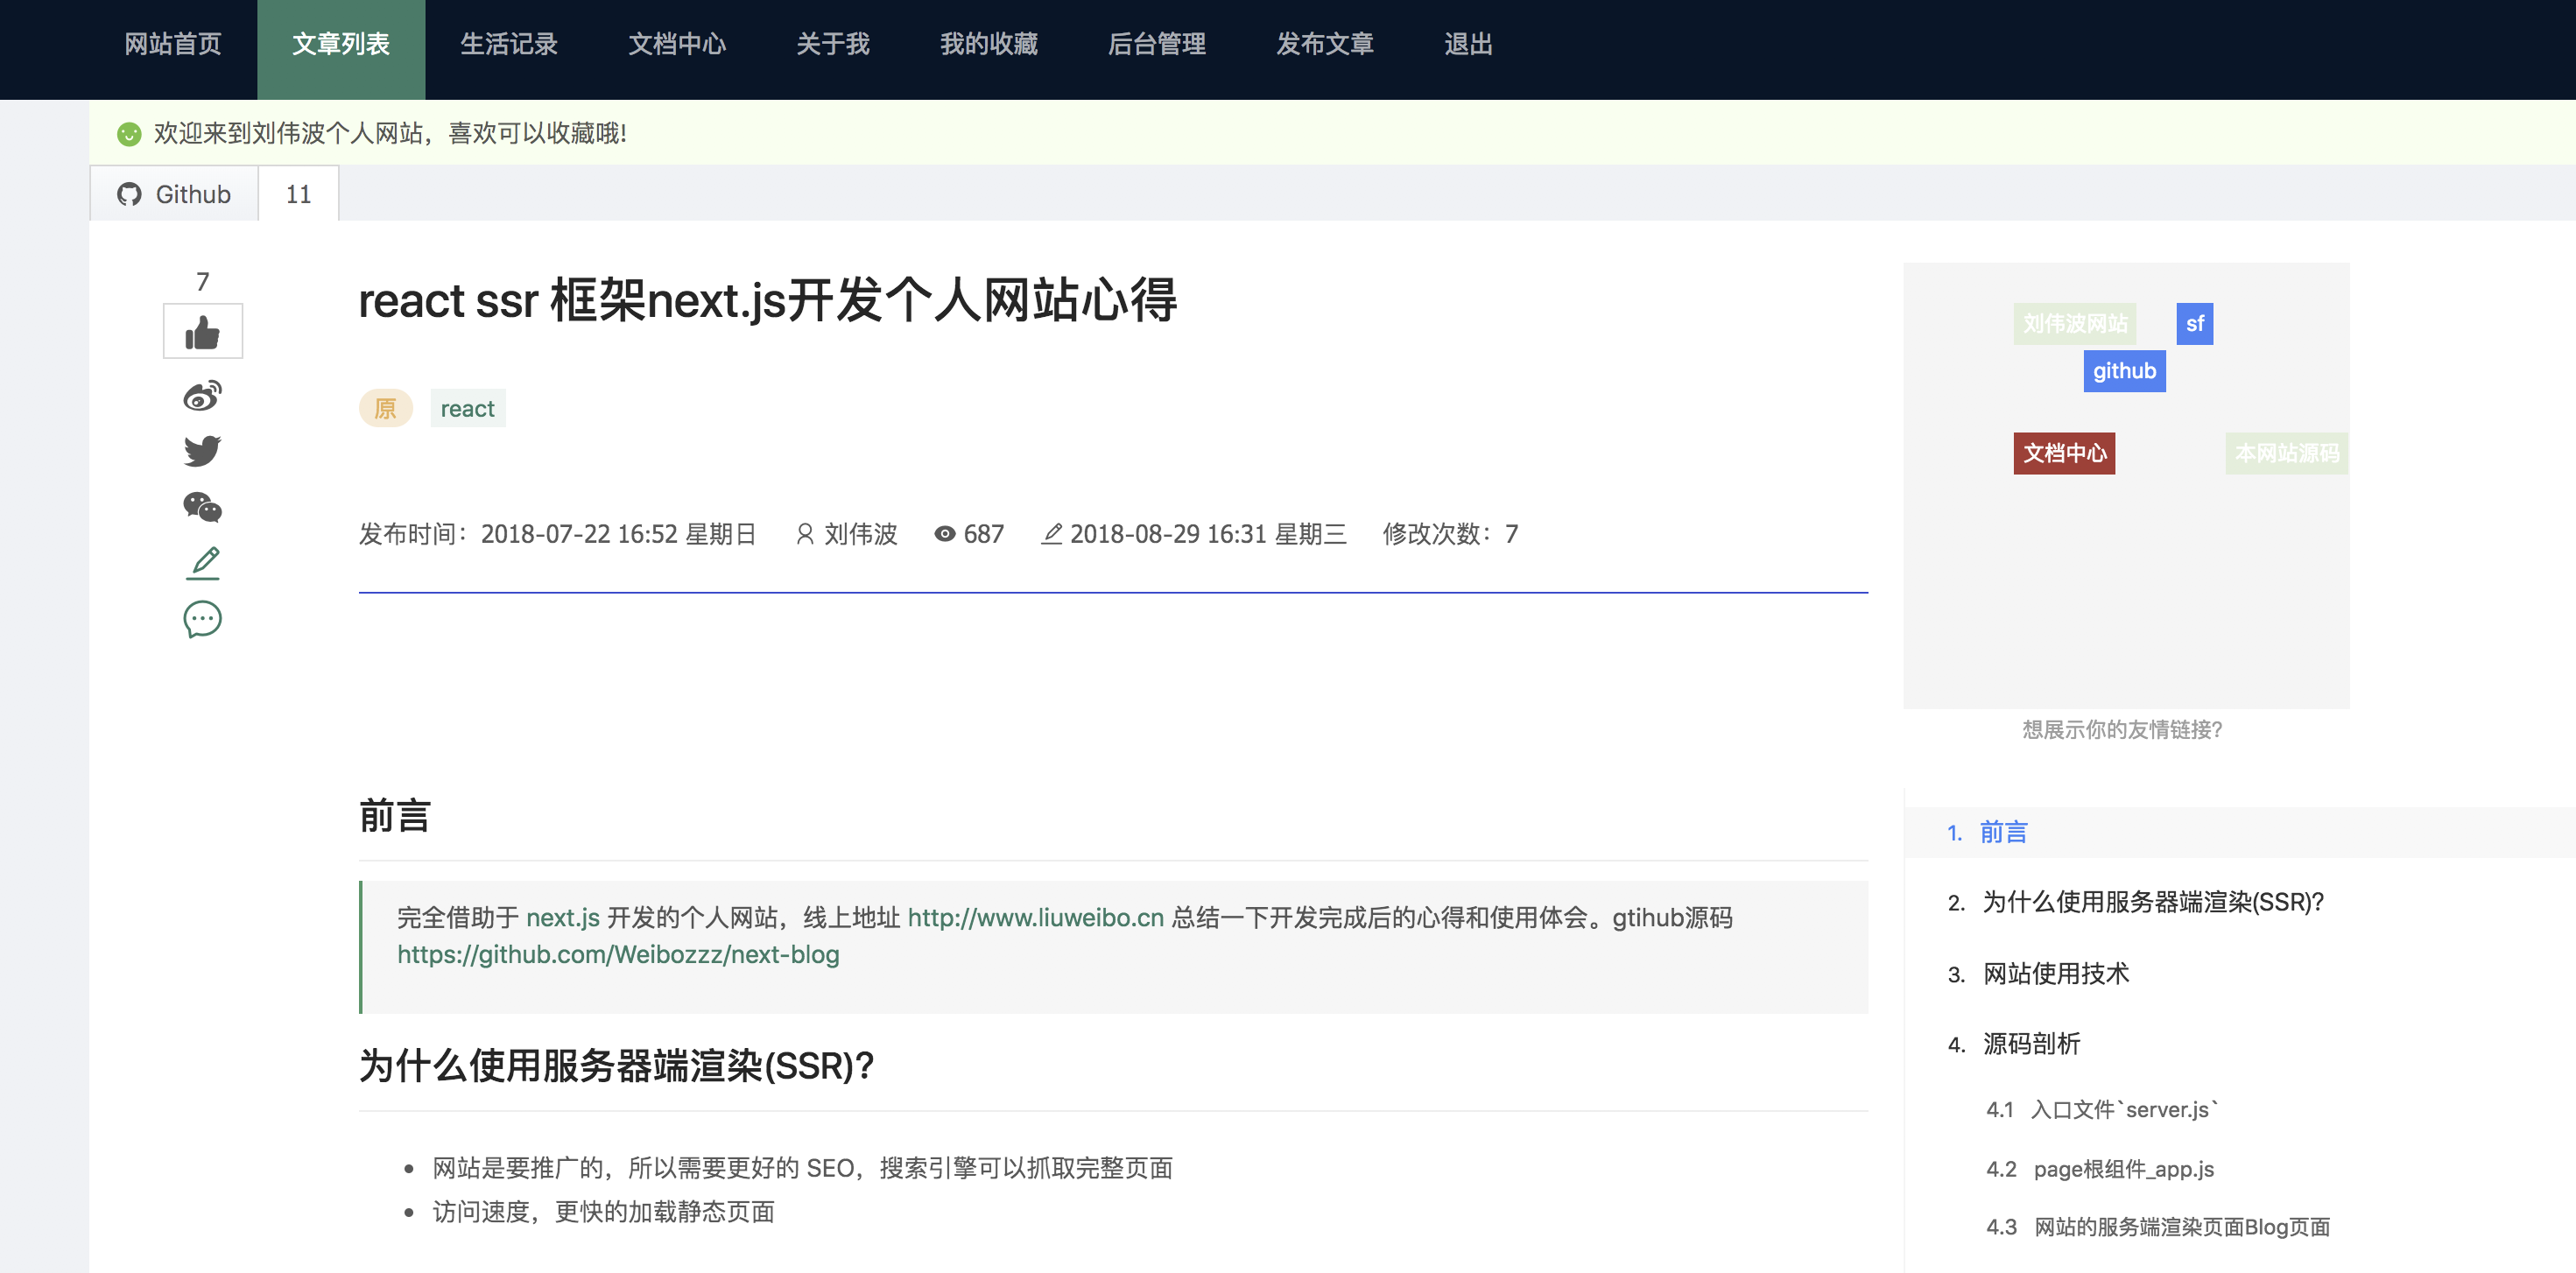 http://images.liuweibo.cn/image/common/detail_1536836727000_459470_1536836749510.png